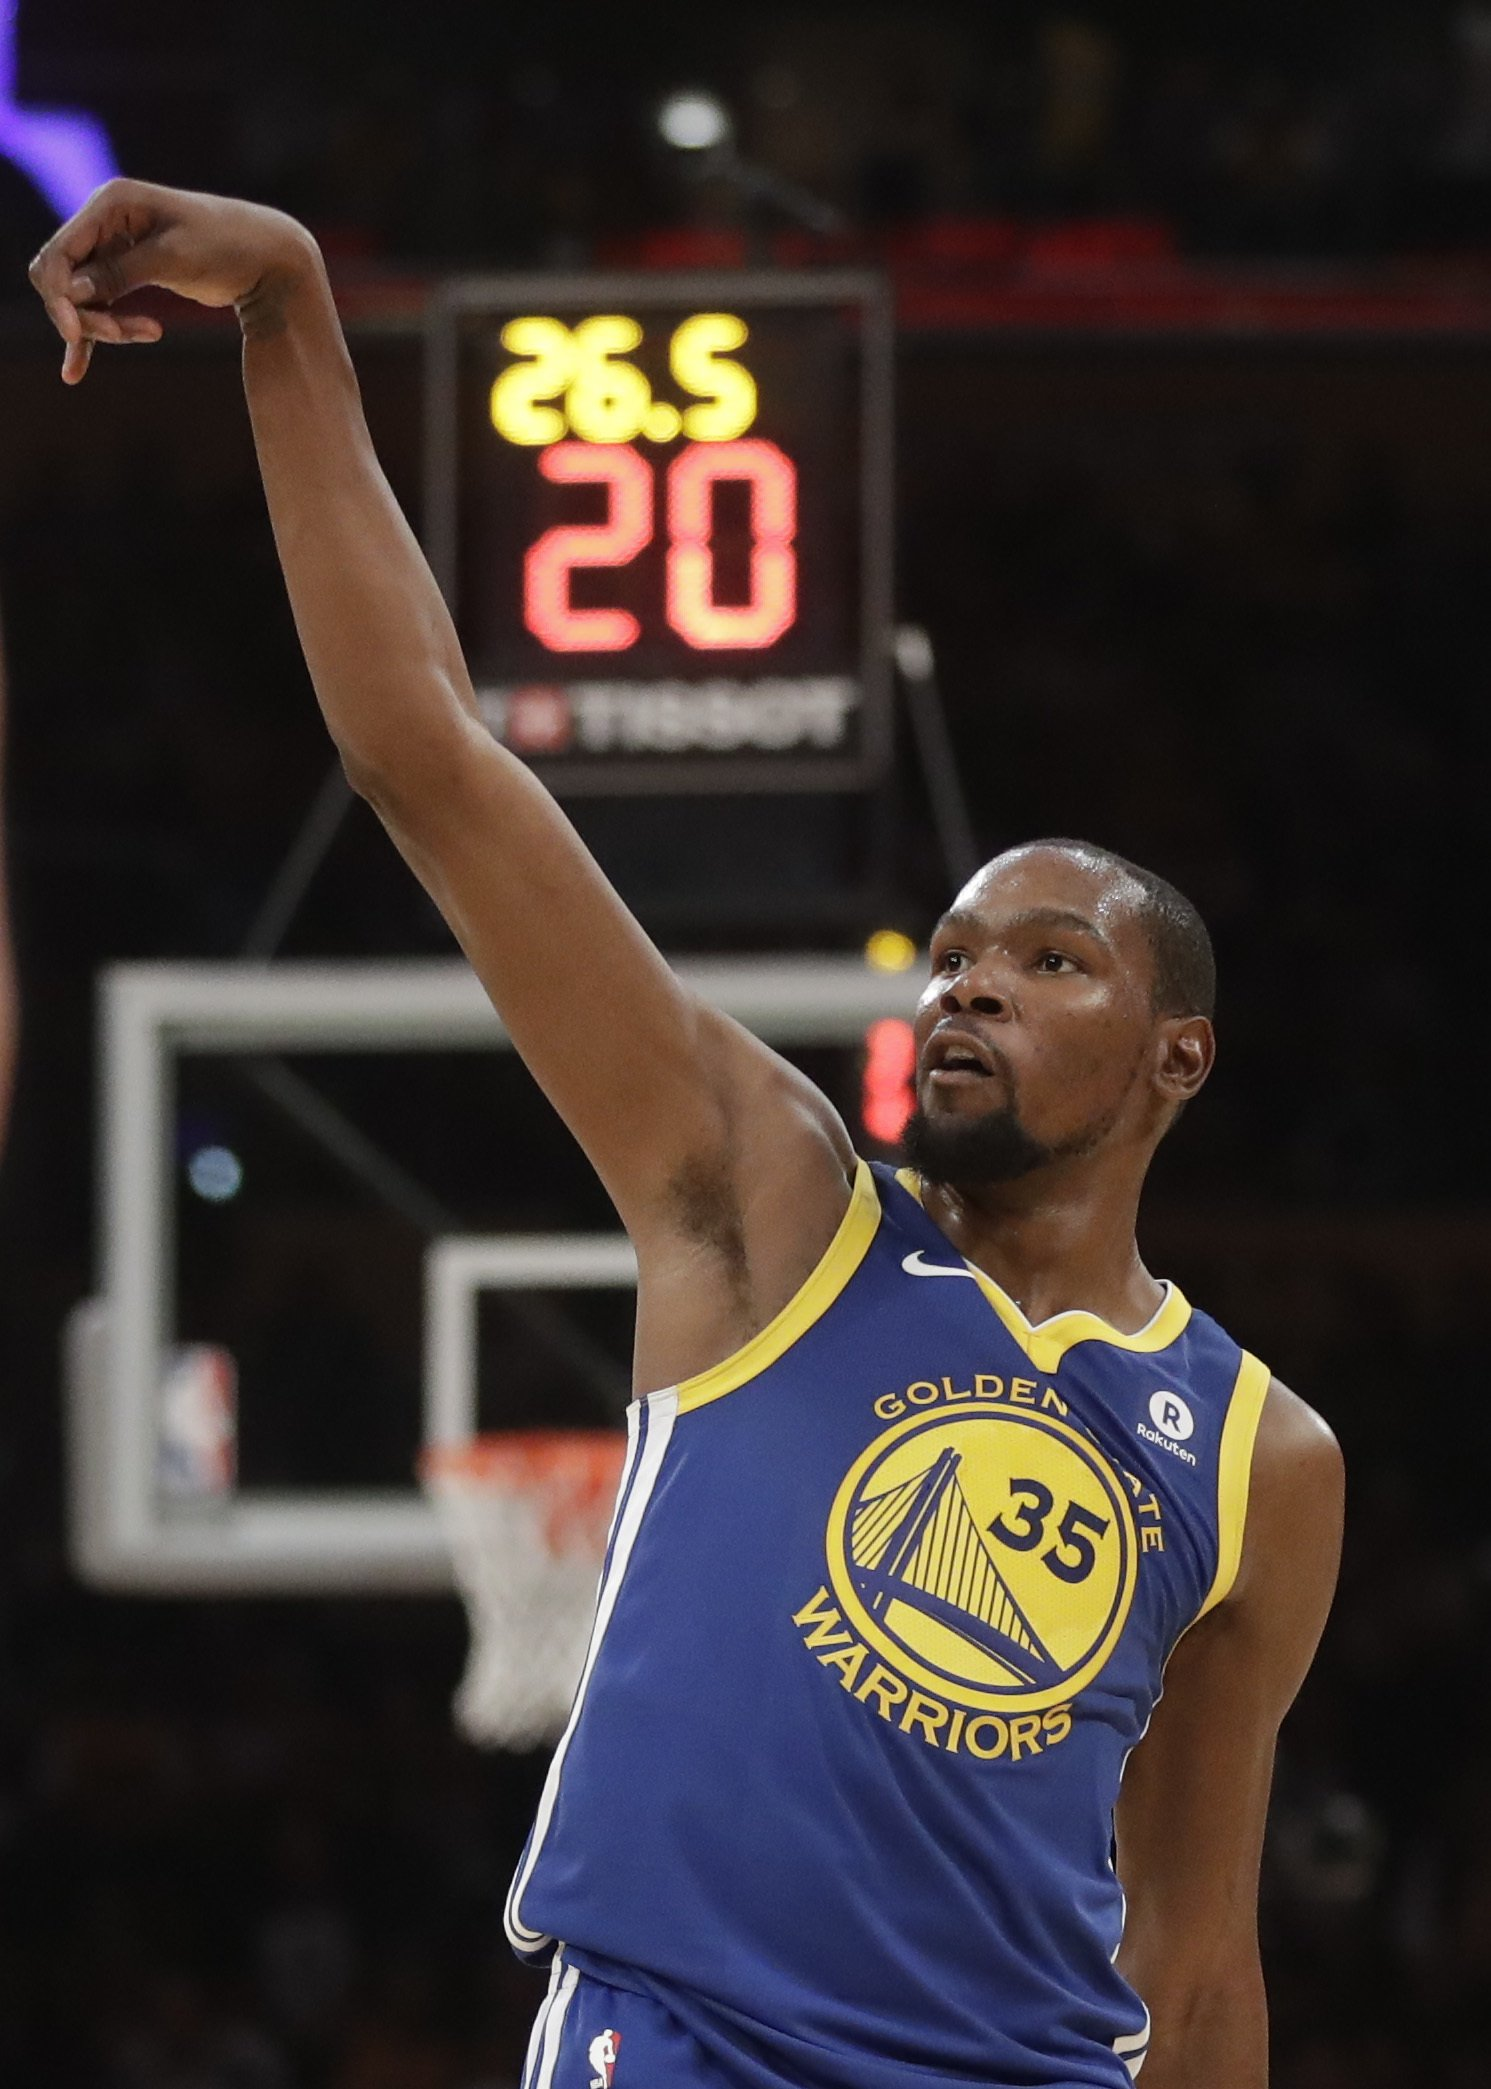 41b3607be6a4 Golden State Warriors forward Kevin Durant celebrates a basket against the  Los Angeles Lakers during the first half of an NBA basketball game in Los  Angeles ...